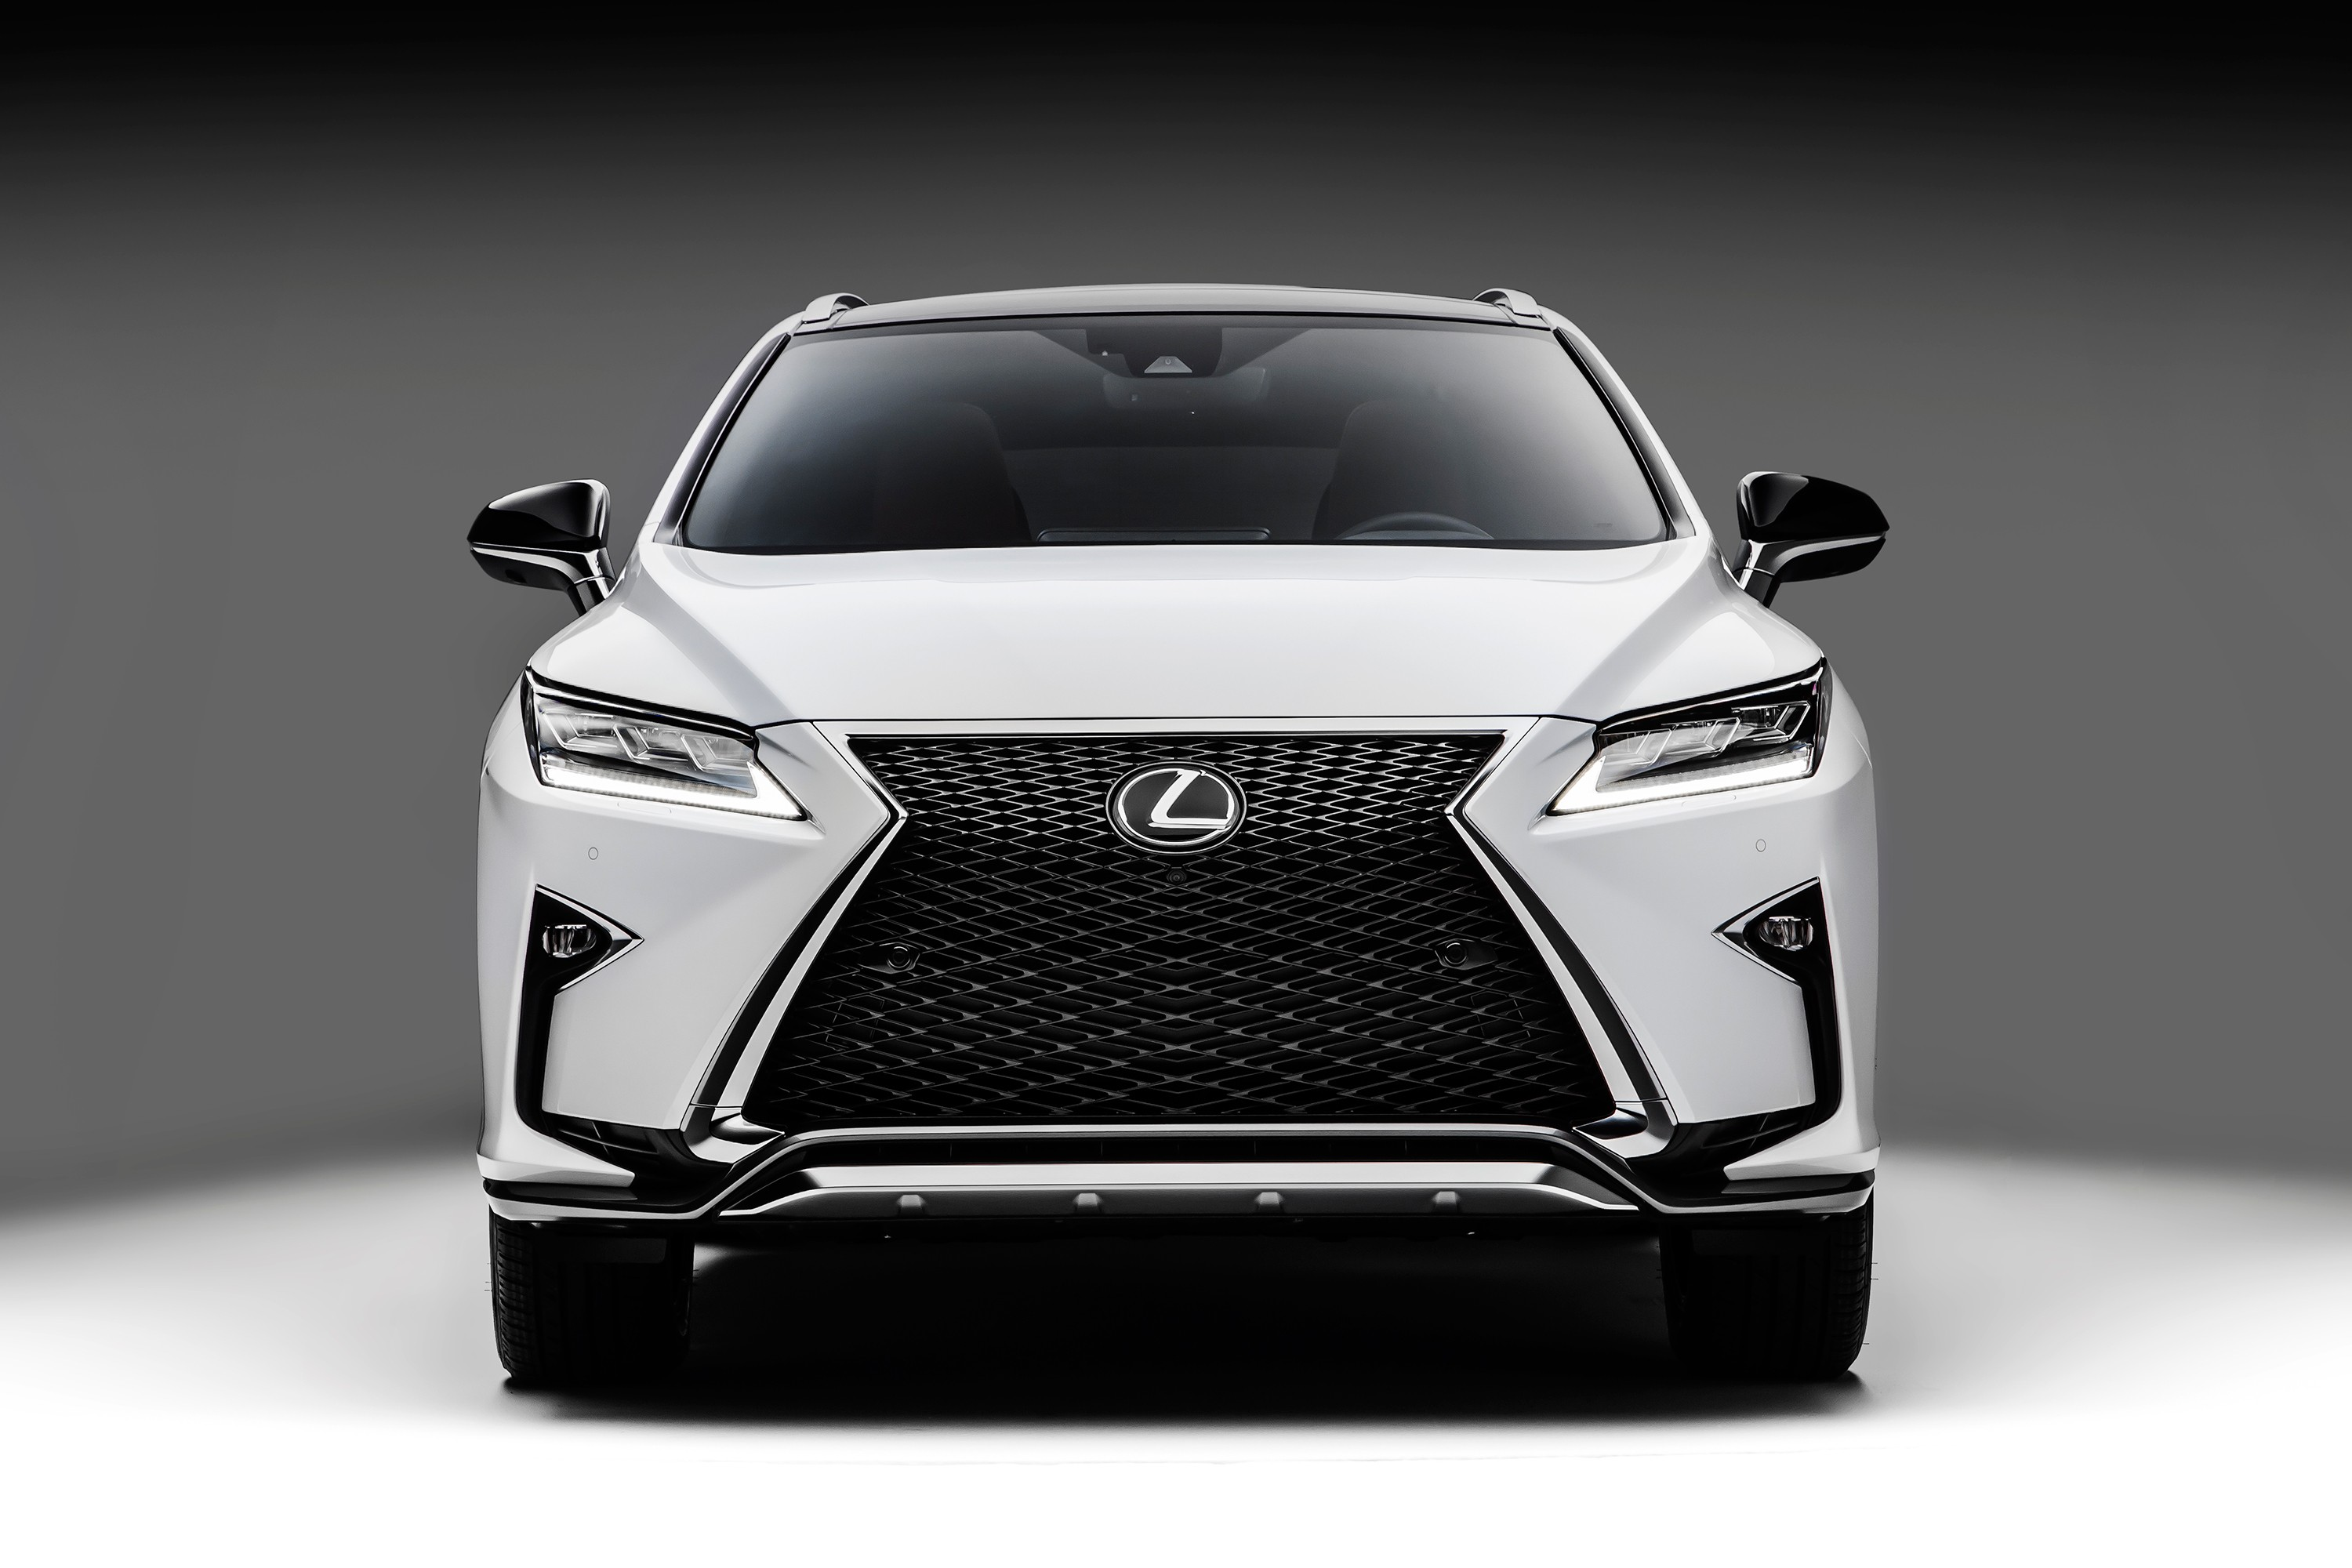 2016 Lexus RX 350 F Sport and RX 450h Show Up in NYC - Video, Photo